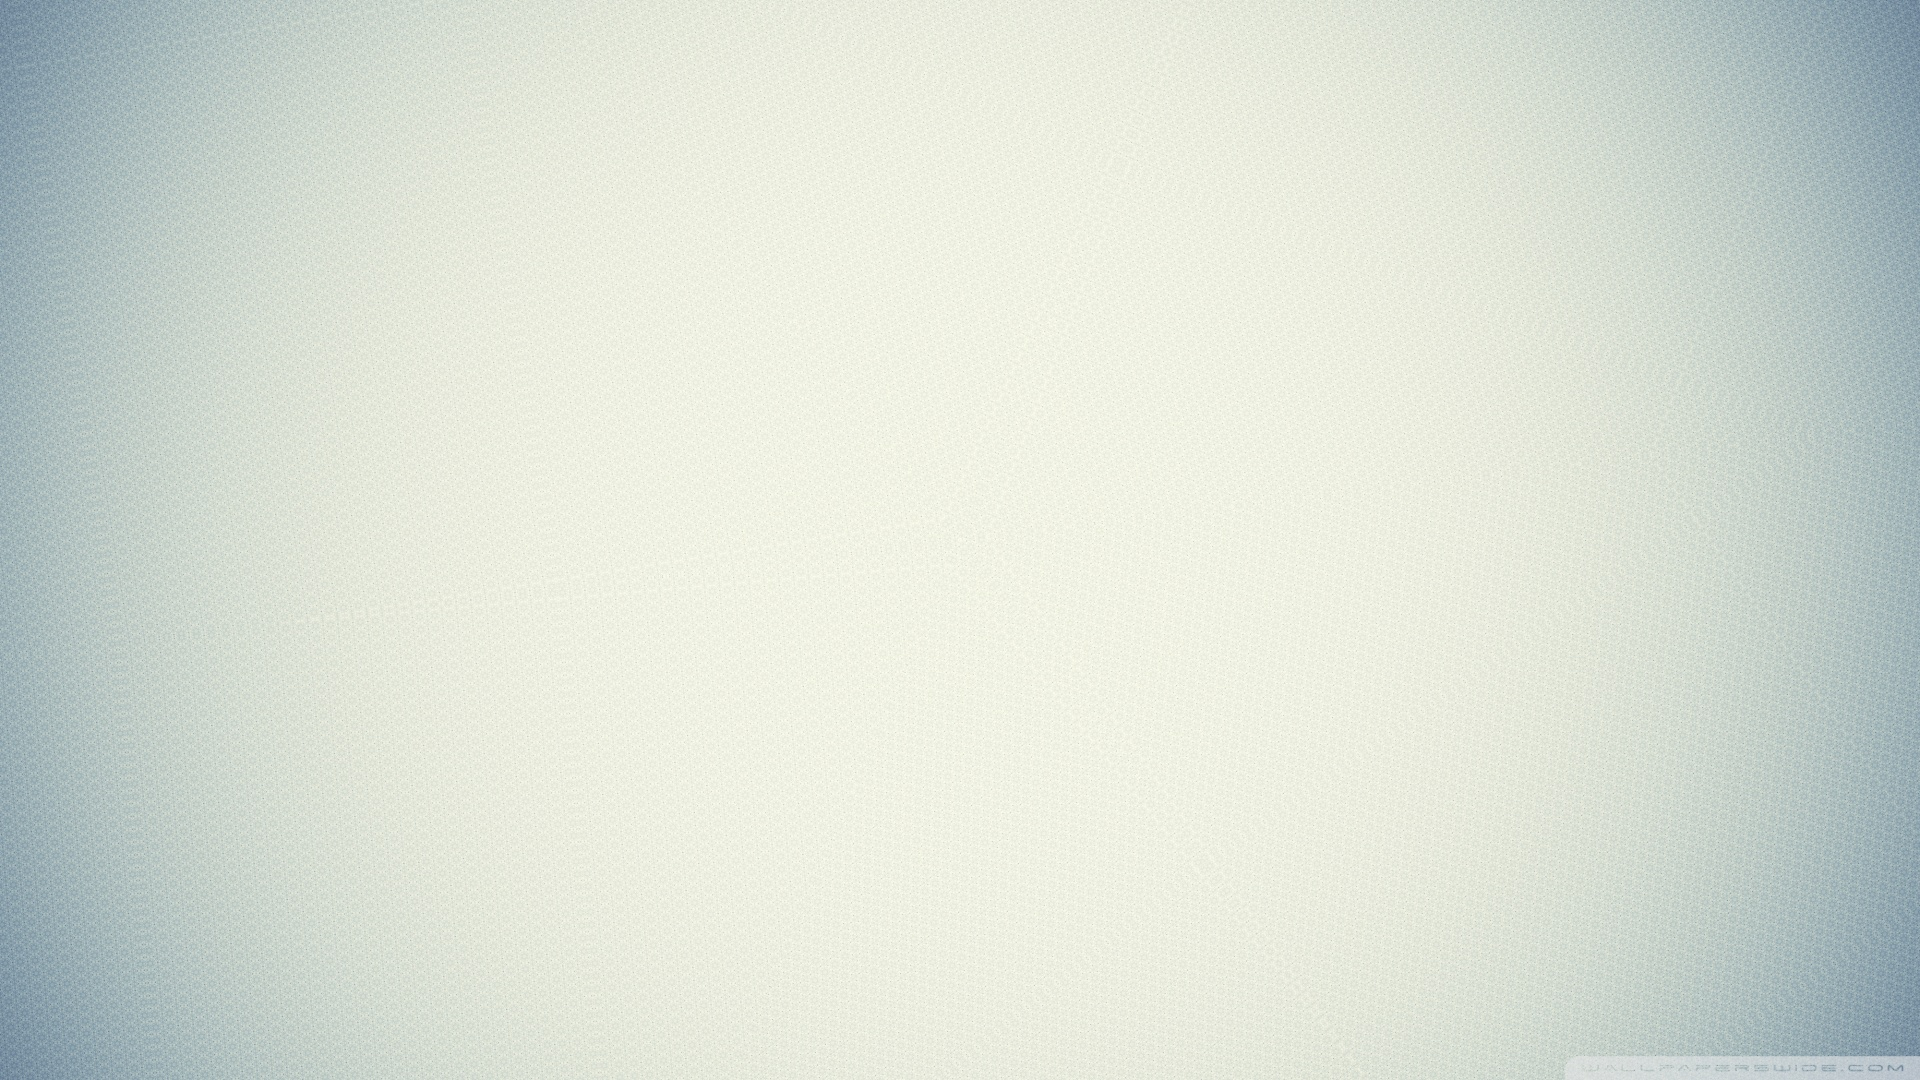 Grey Background Wallpaper - WallpaperSafari